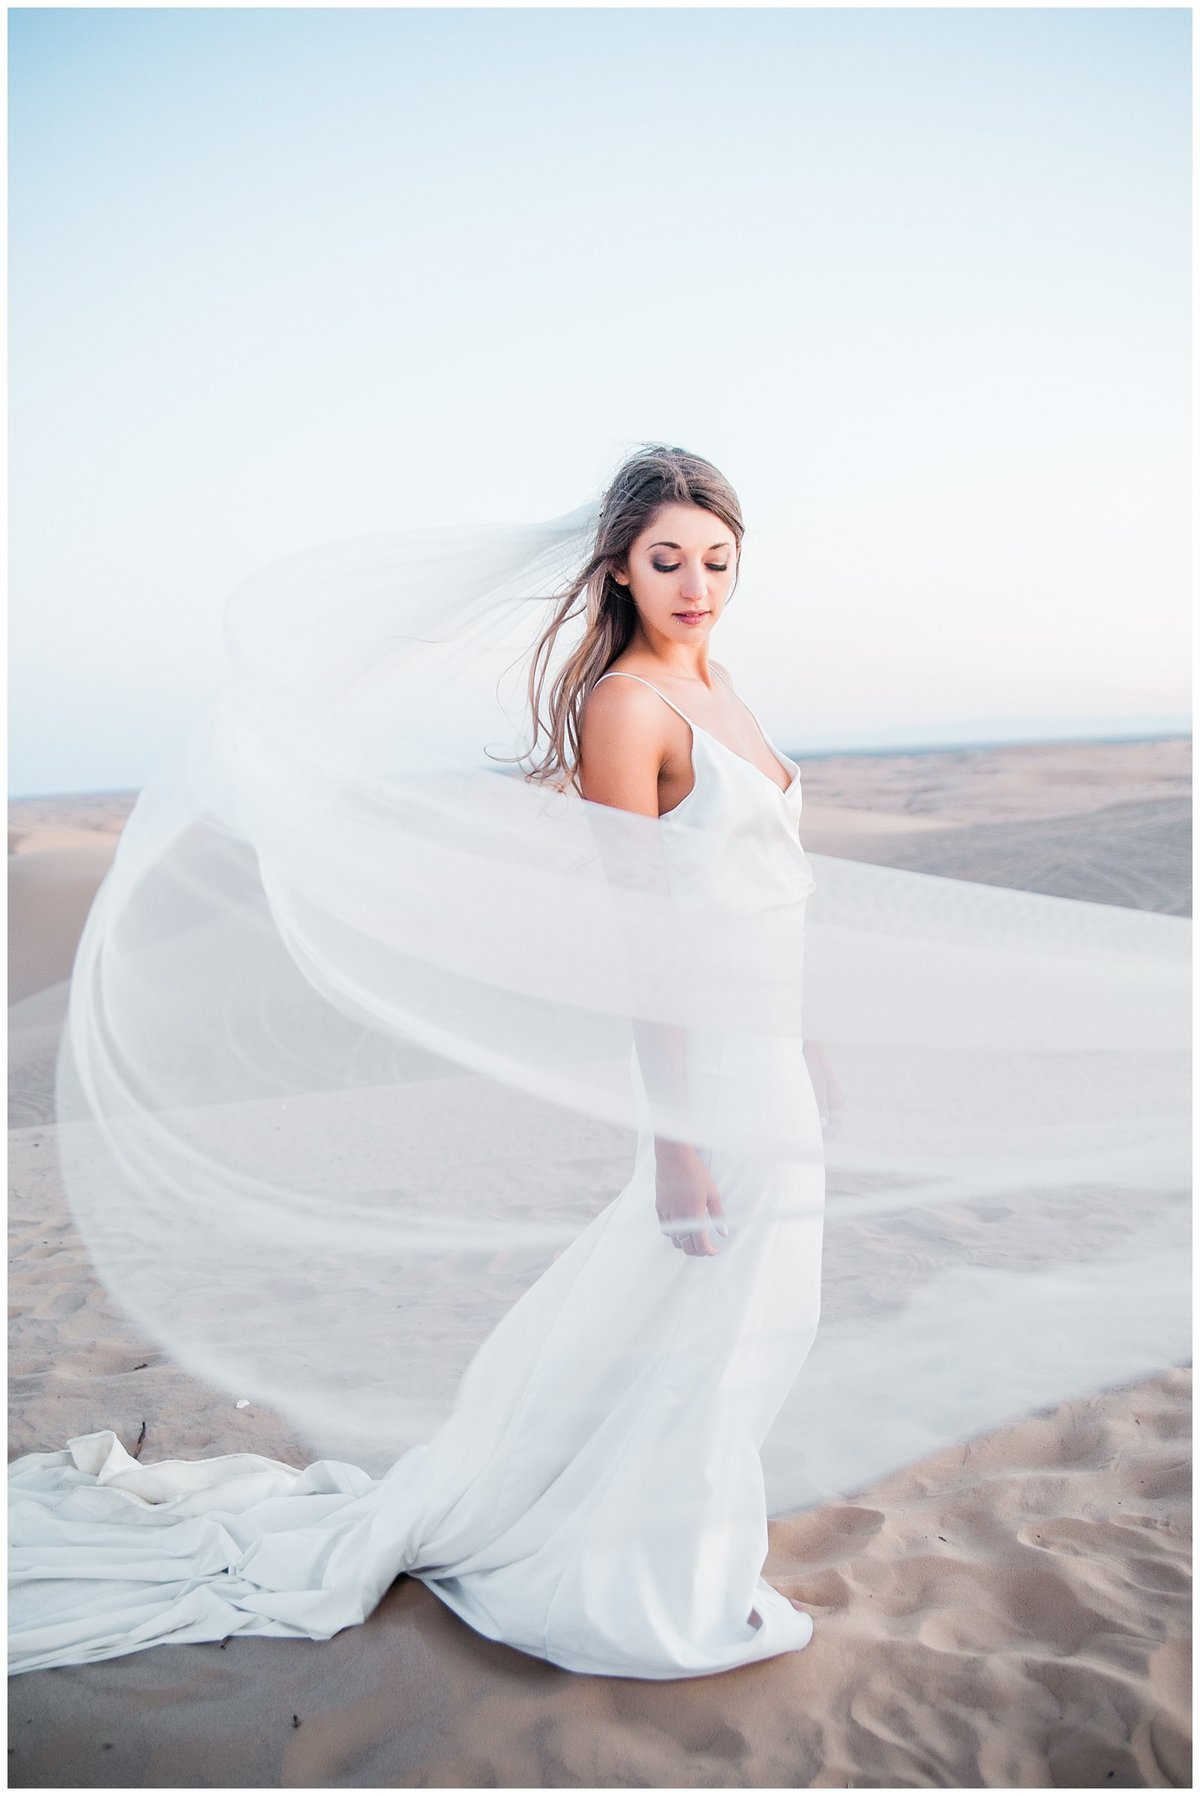 Glamis Desert Bohemian Wedding Styled elopement southern california sand dunes photo057